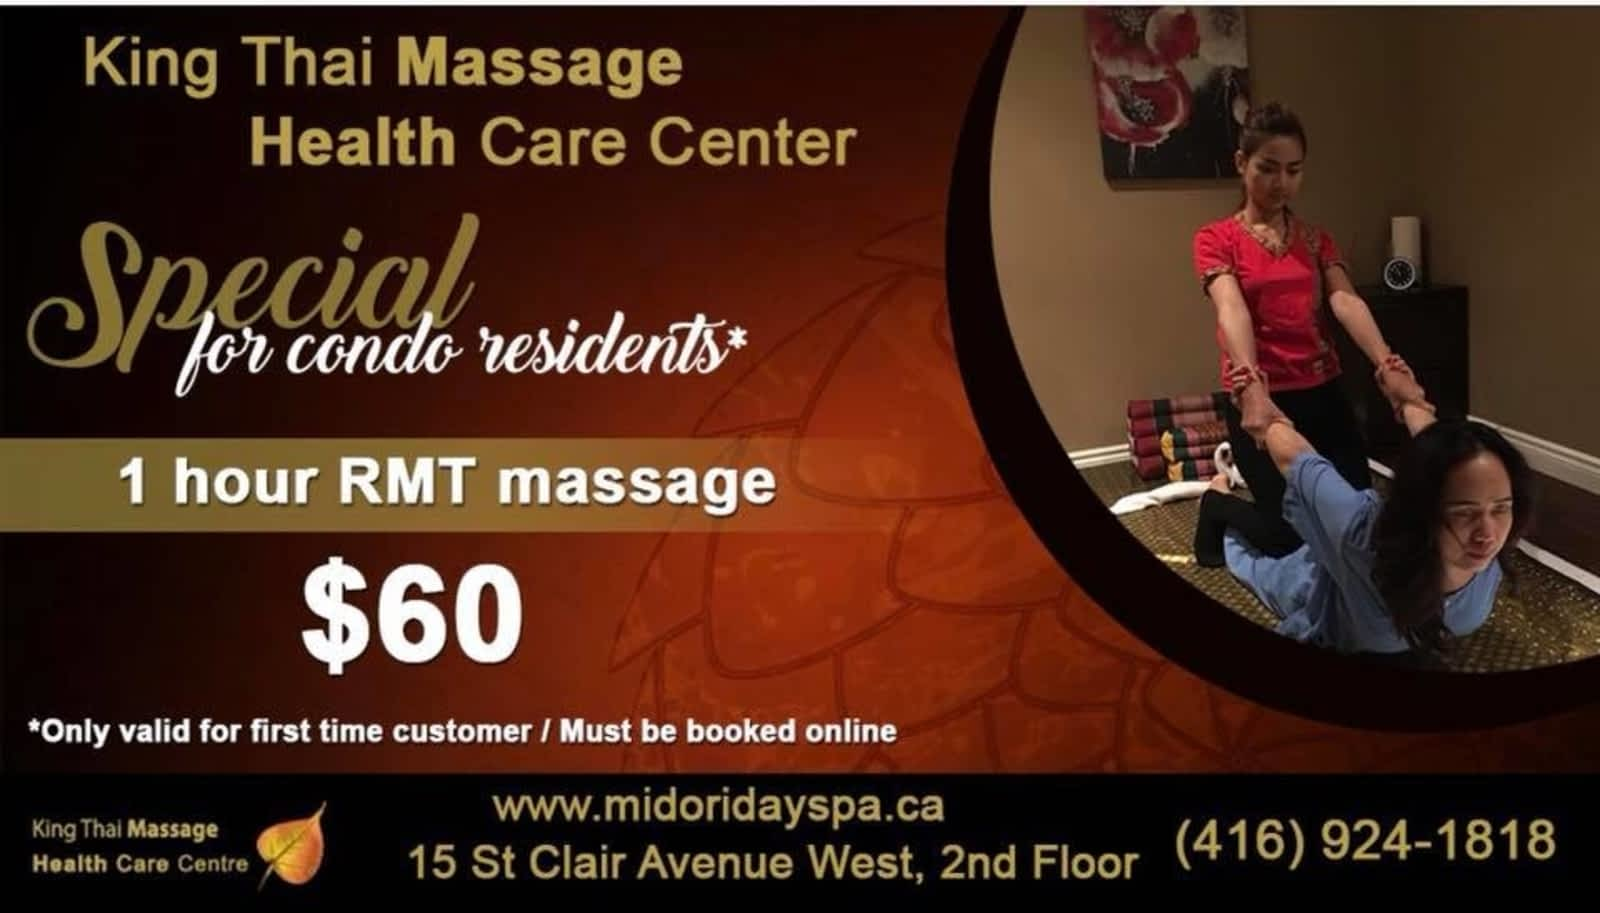 Erotic exotics massage directory toronto picture 435